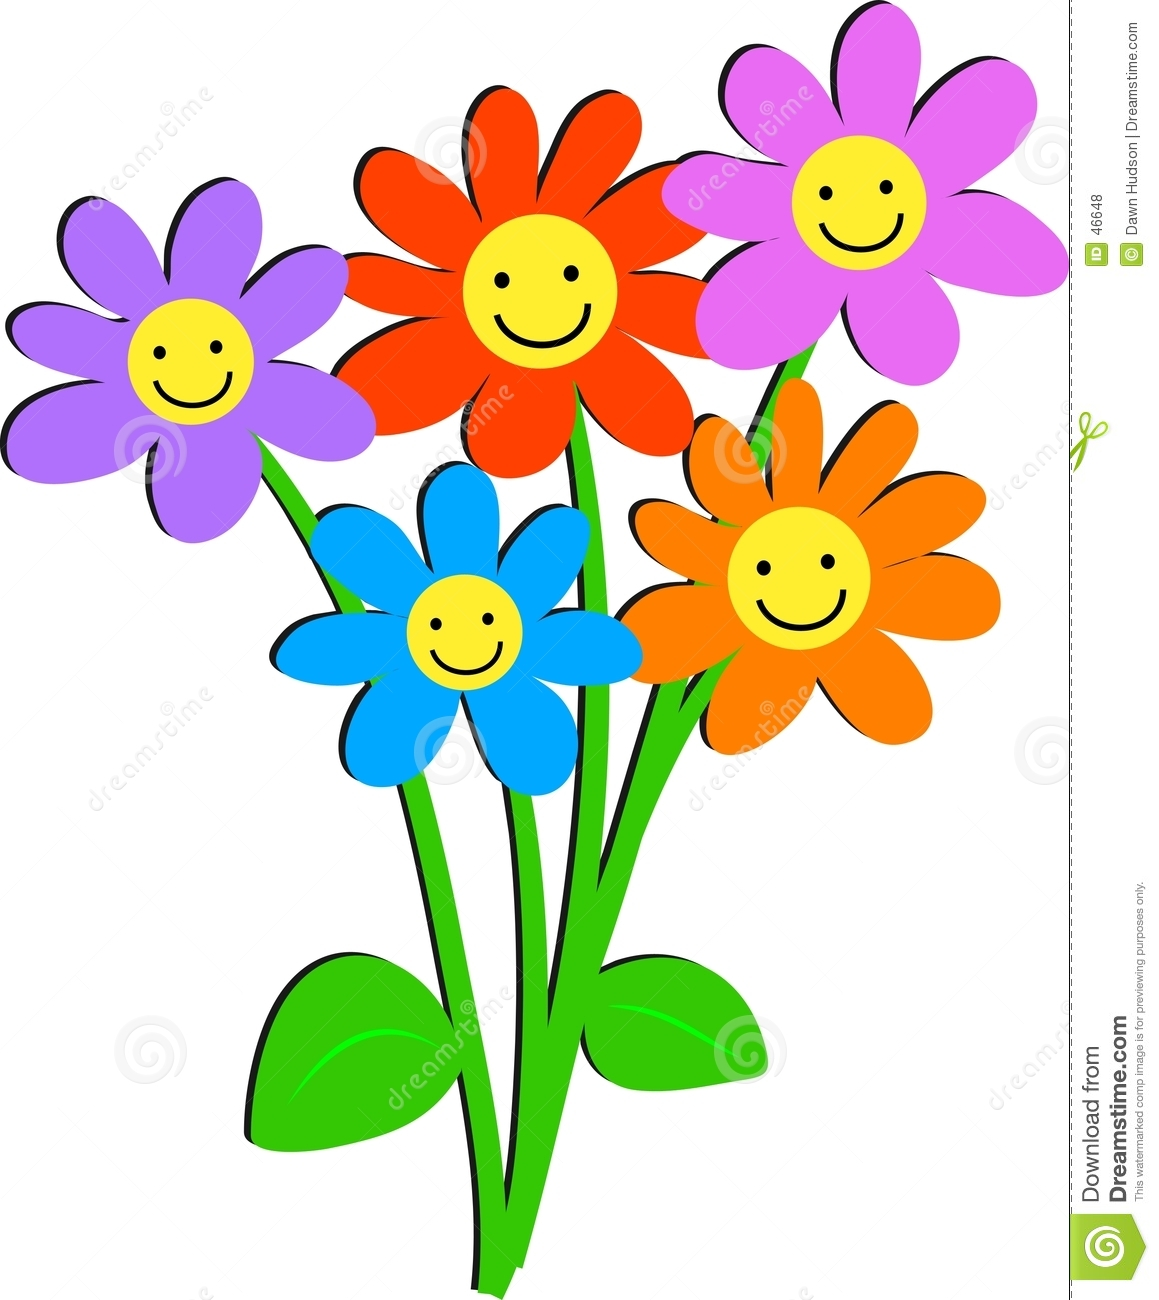 1159x1300 Free Animated Flower Clipart